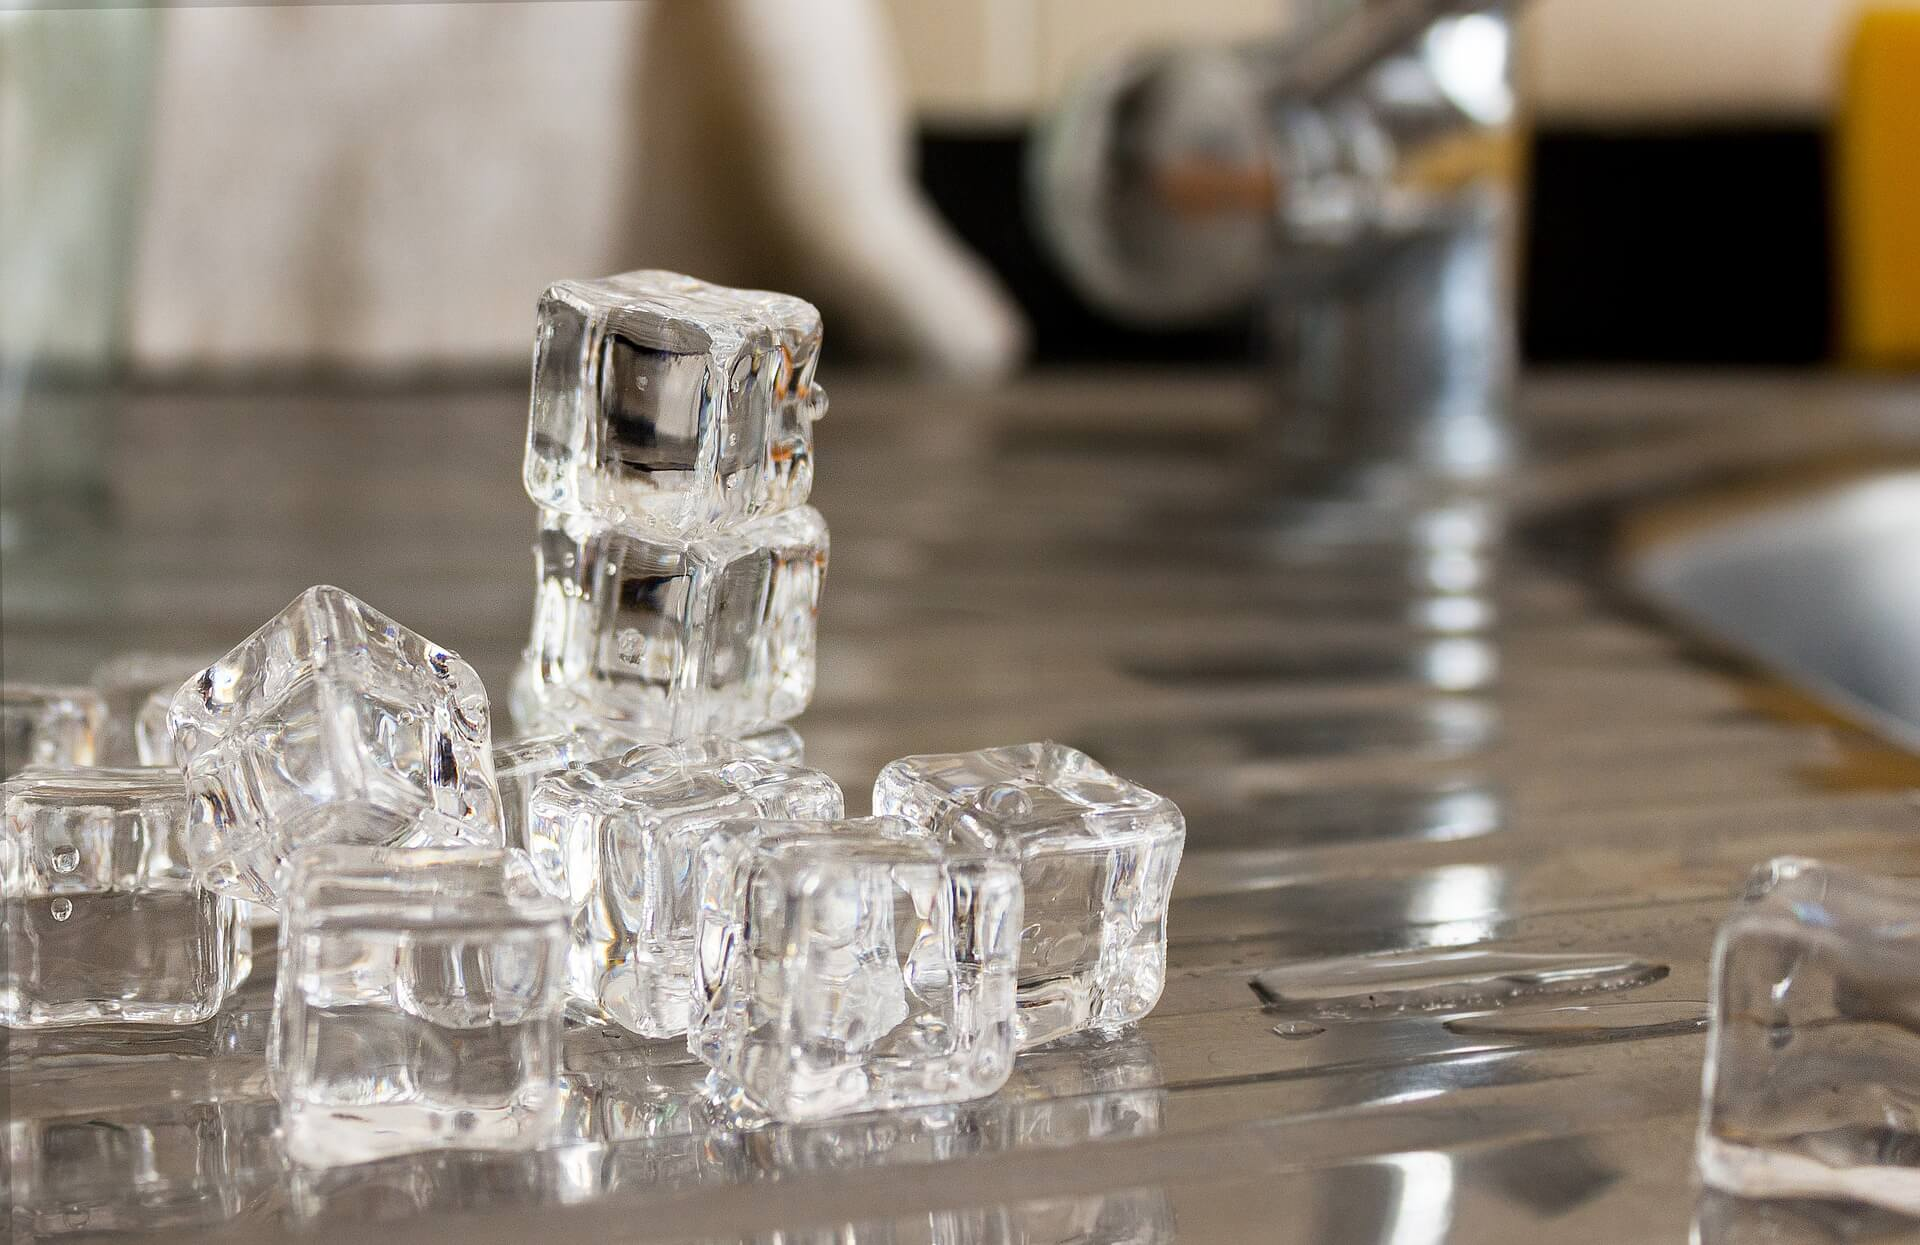 Quick ice cubes